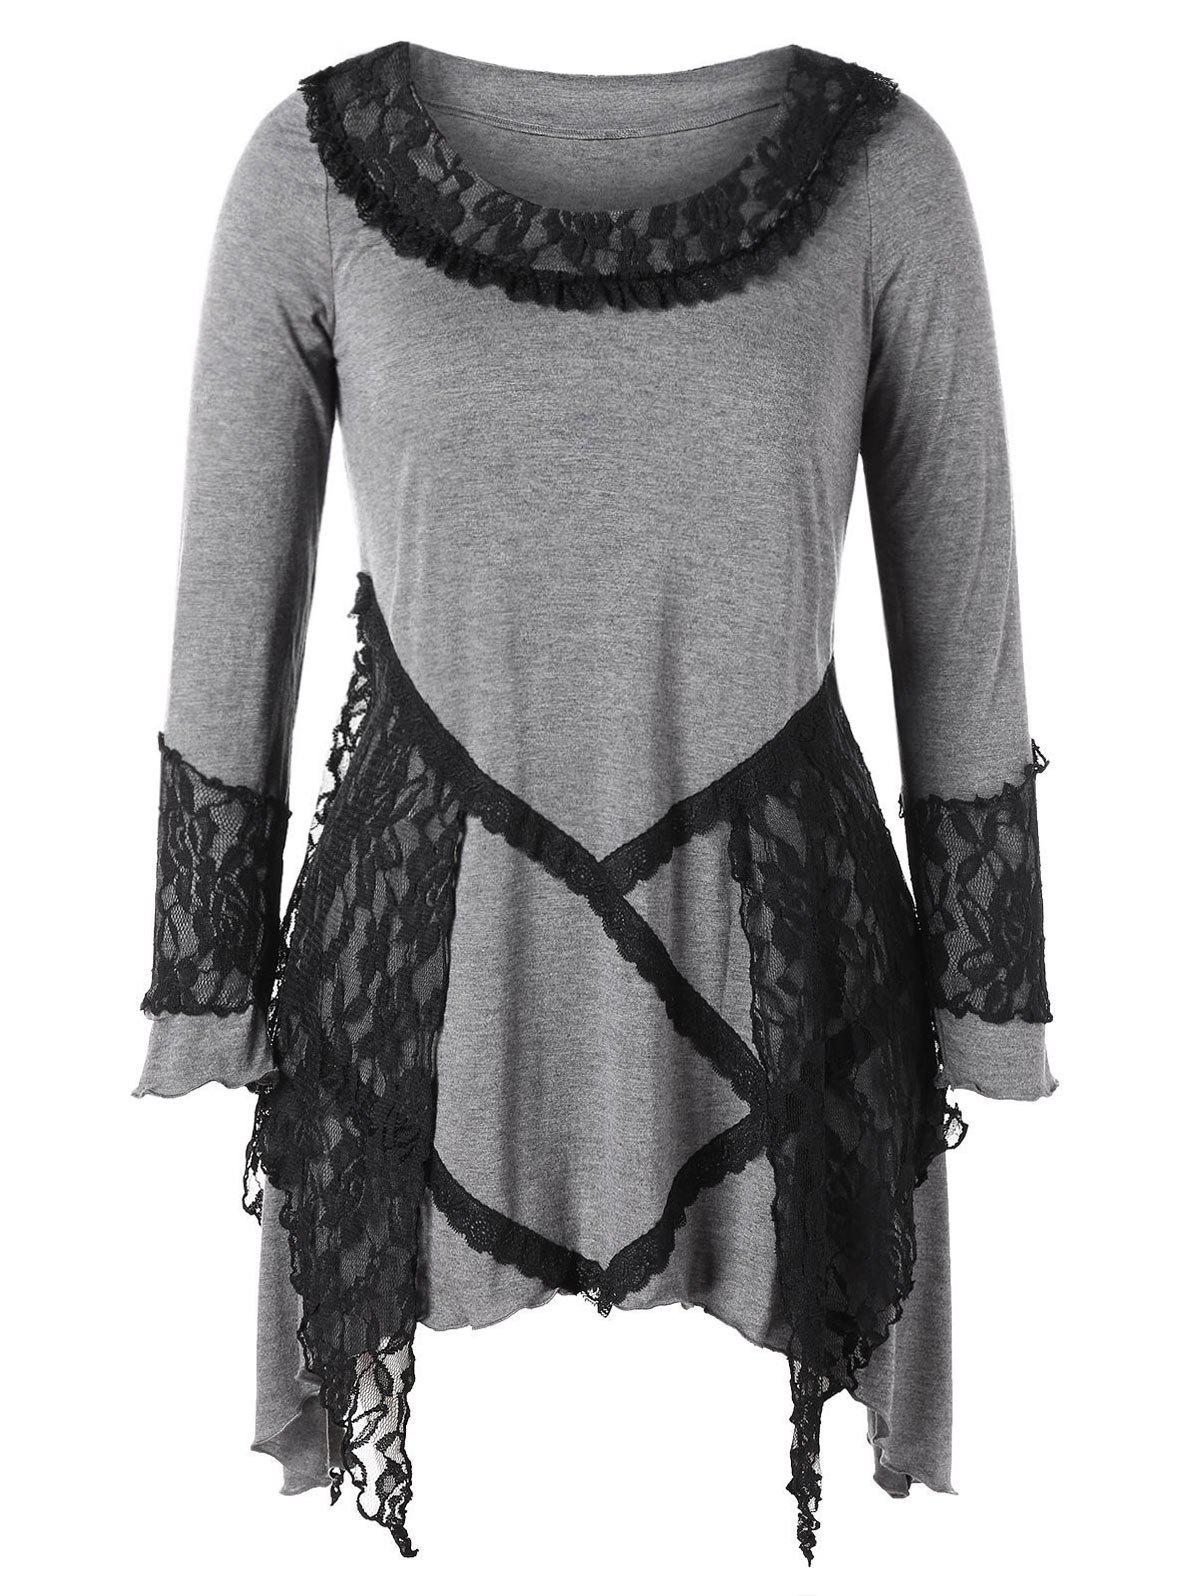 Plus Size Lace Splicing Handkerchief Dress - DARK GRAY 3X